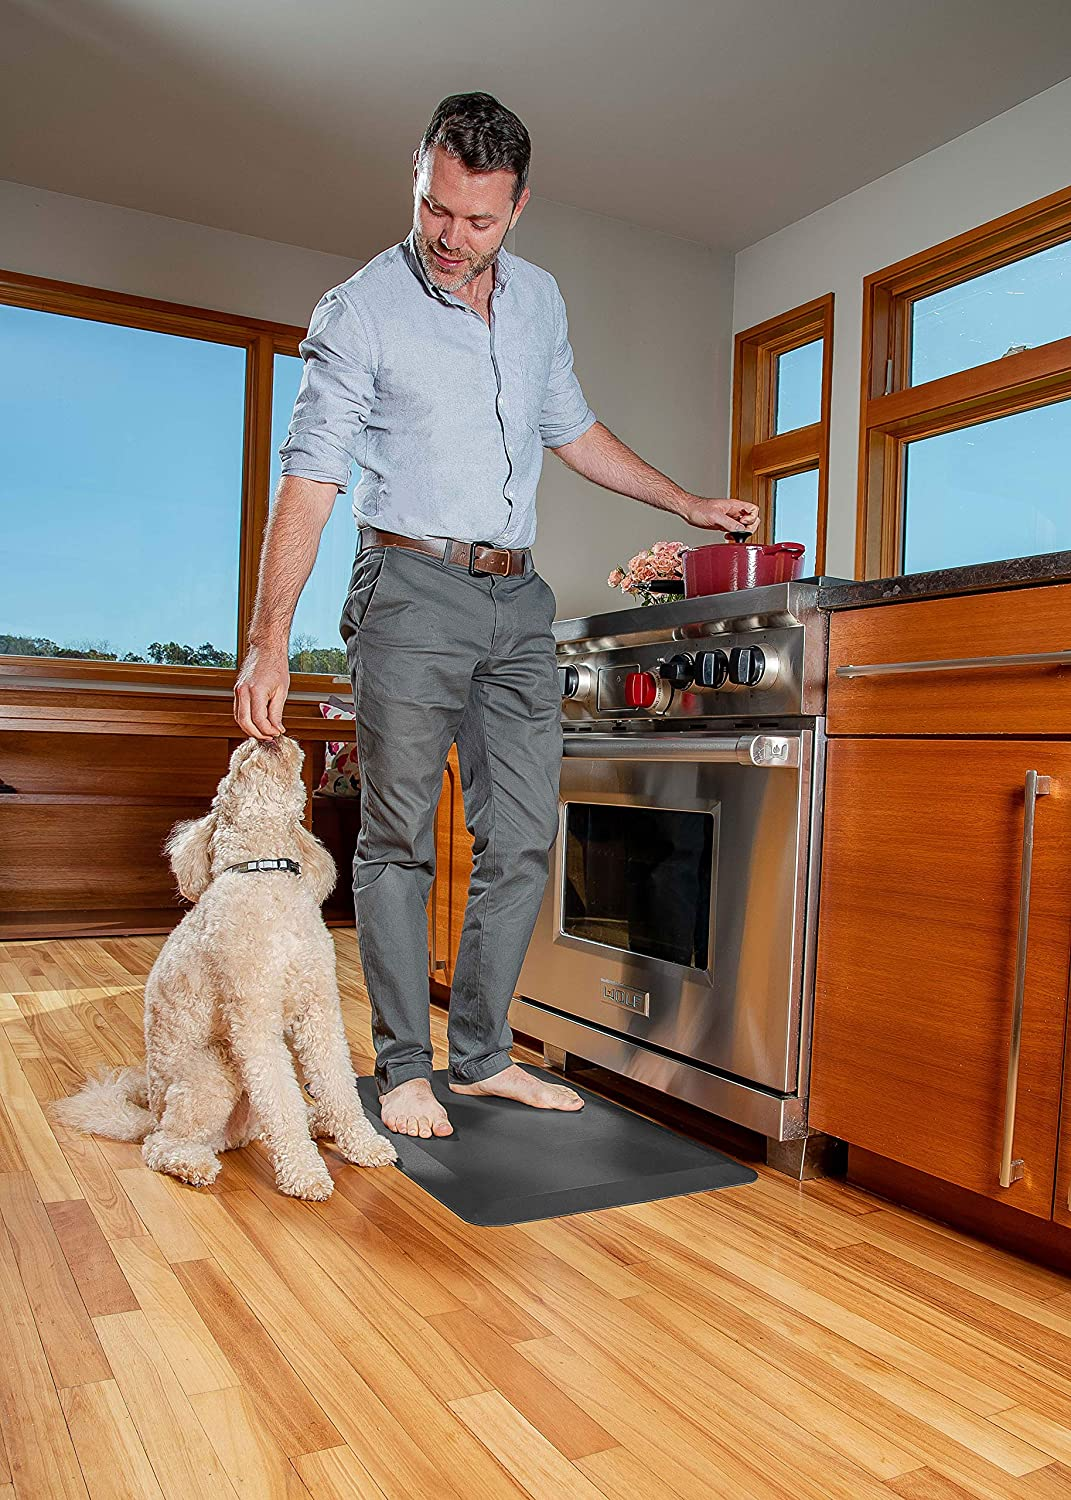 Oasis Mat Perfect for Kitchens and Standing Desks 20x32x3//4-Inch, Black 5 Colors and 3 Sizes Oasis Kitchen Mats Leather Grain Comfort Anti Fatigue Mat /& Kitchen Rug